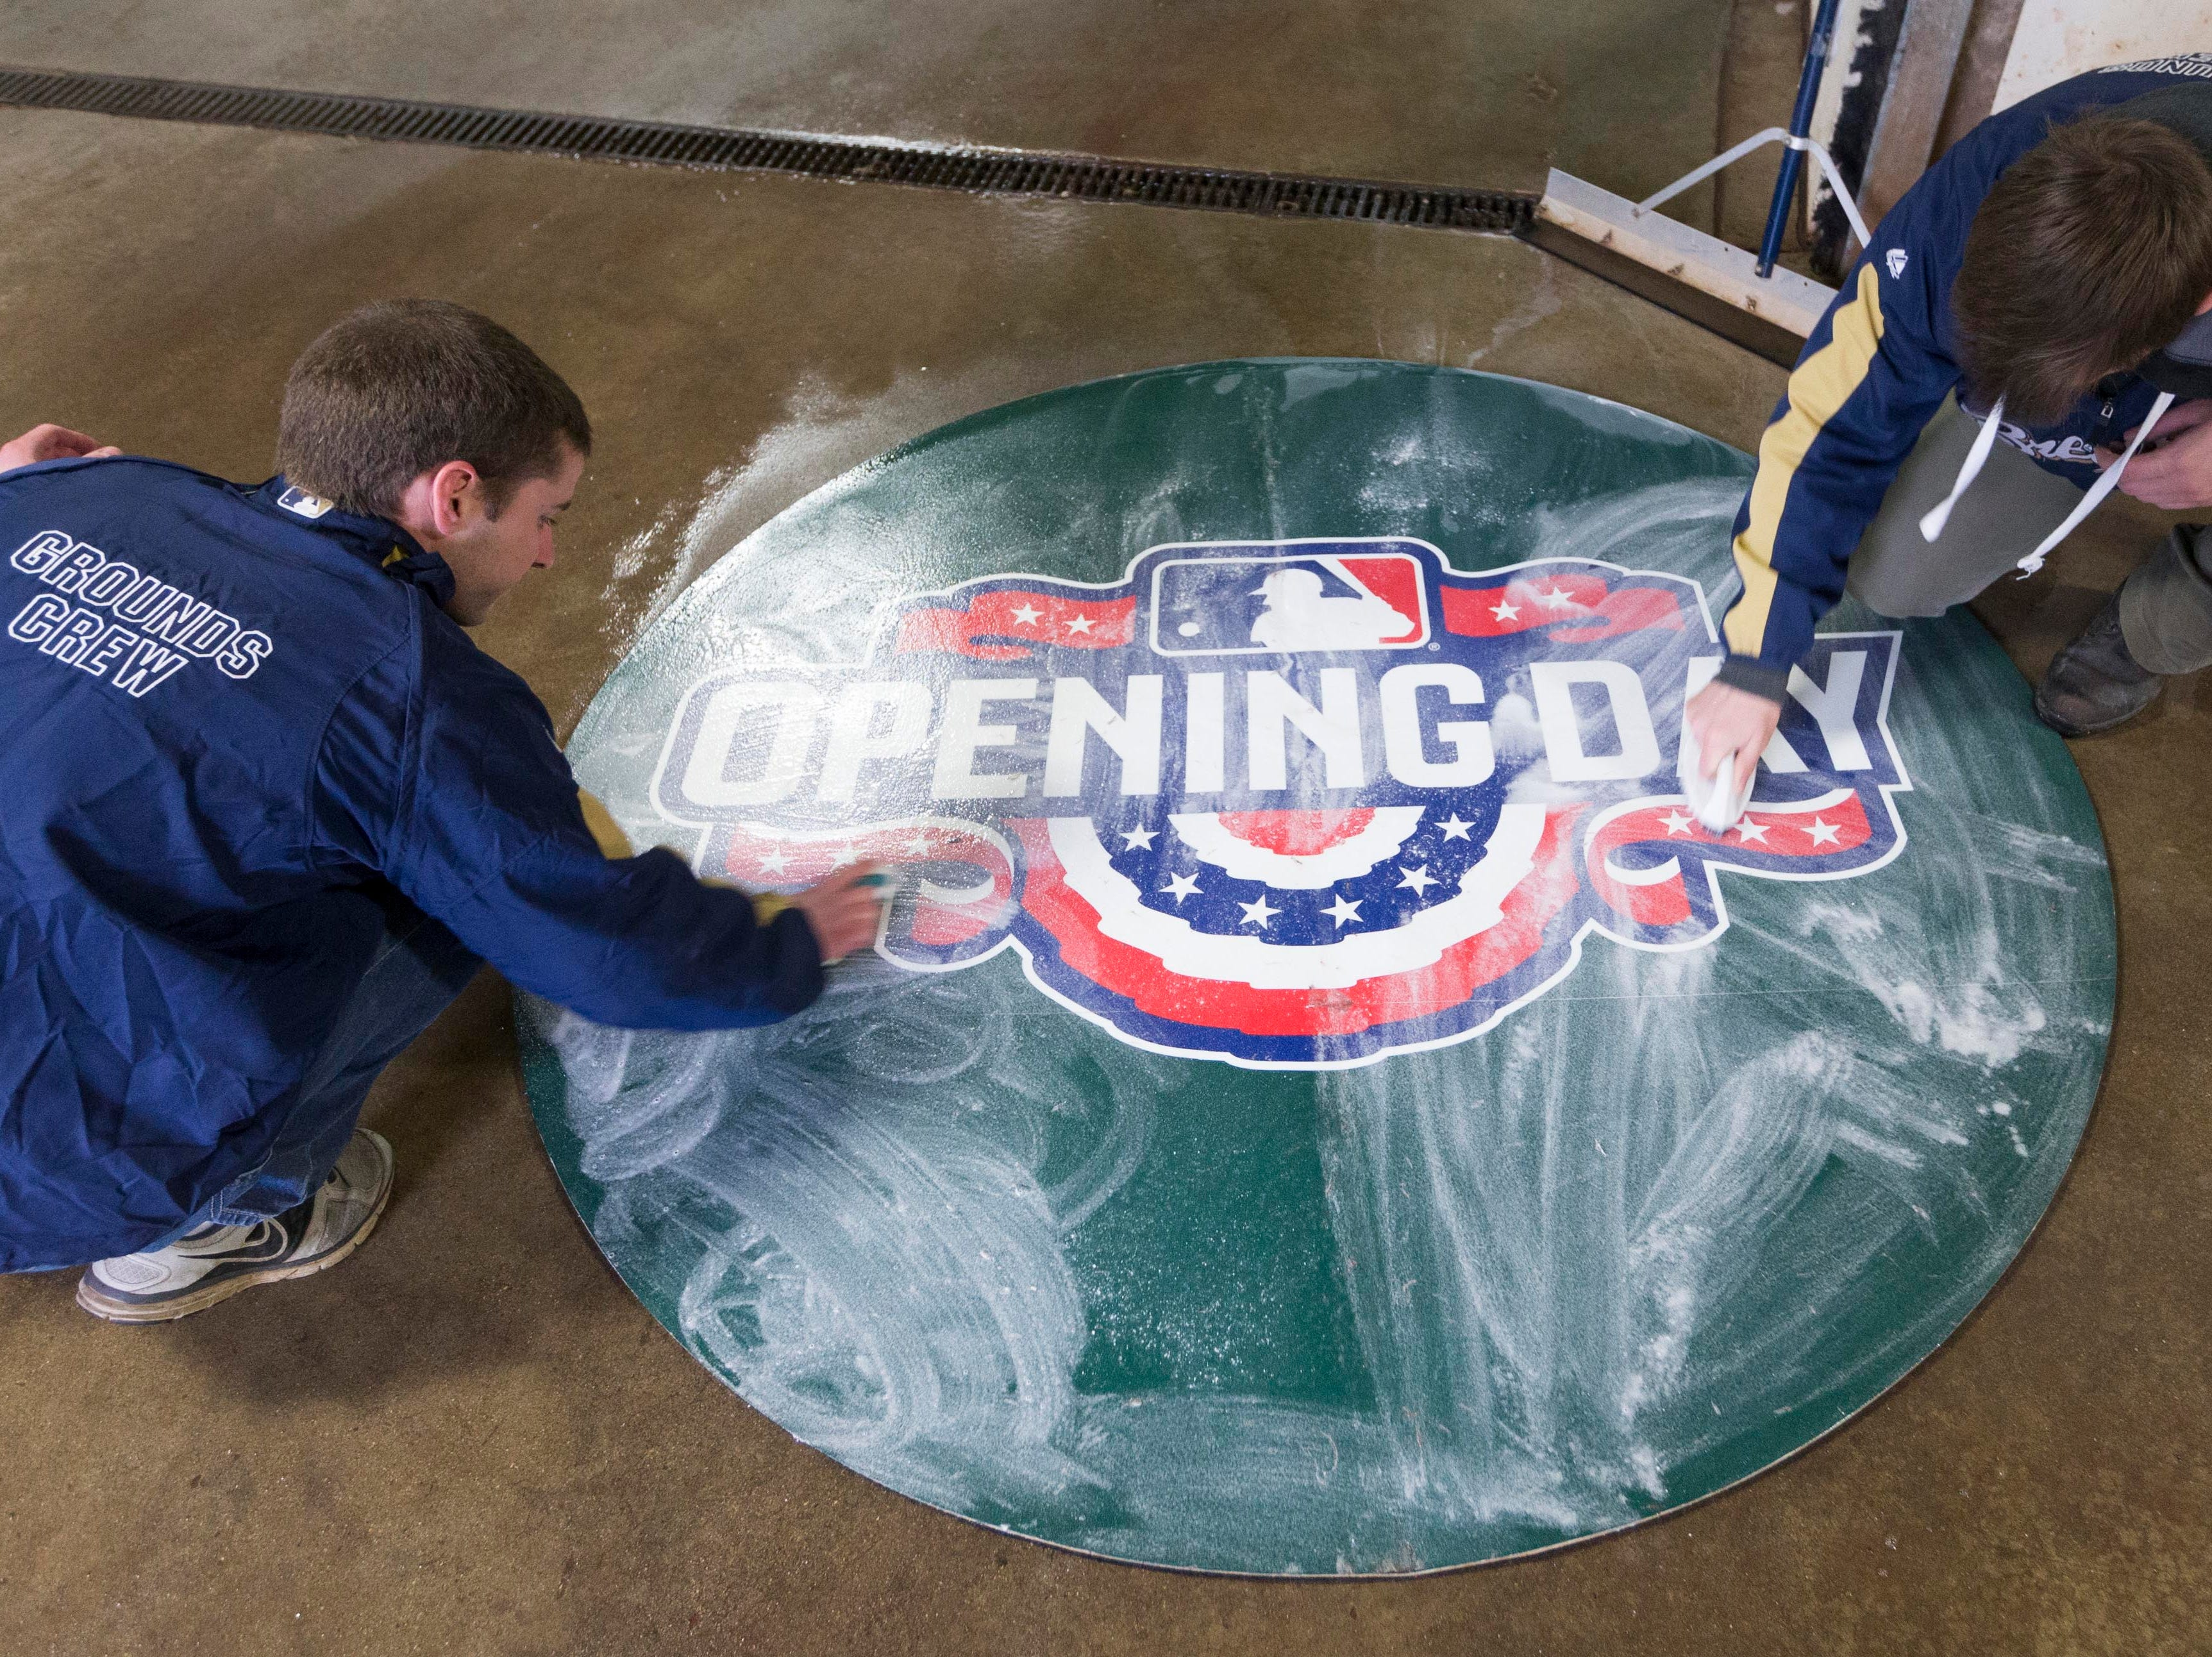 March 27, 2018: Groundskeepers Chris Solberg, left, and Joseph Kaszubowski clean an opening day emblem at Miller Park in Milwaukee.